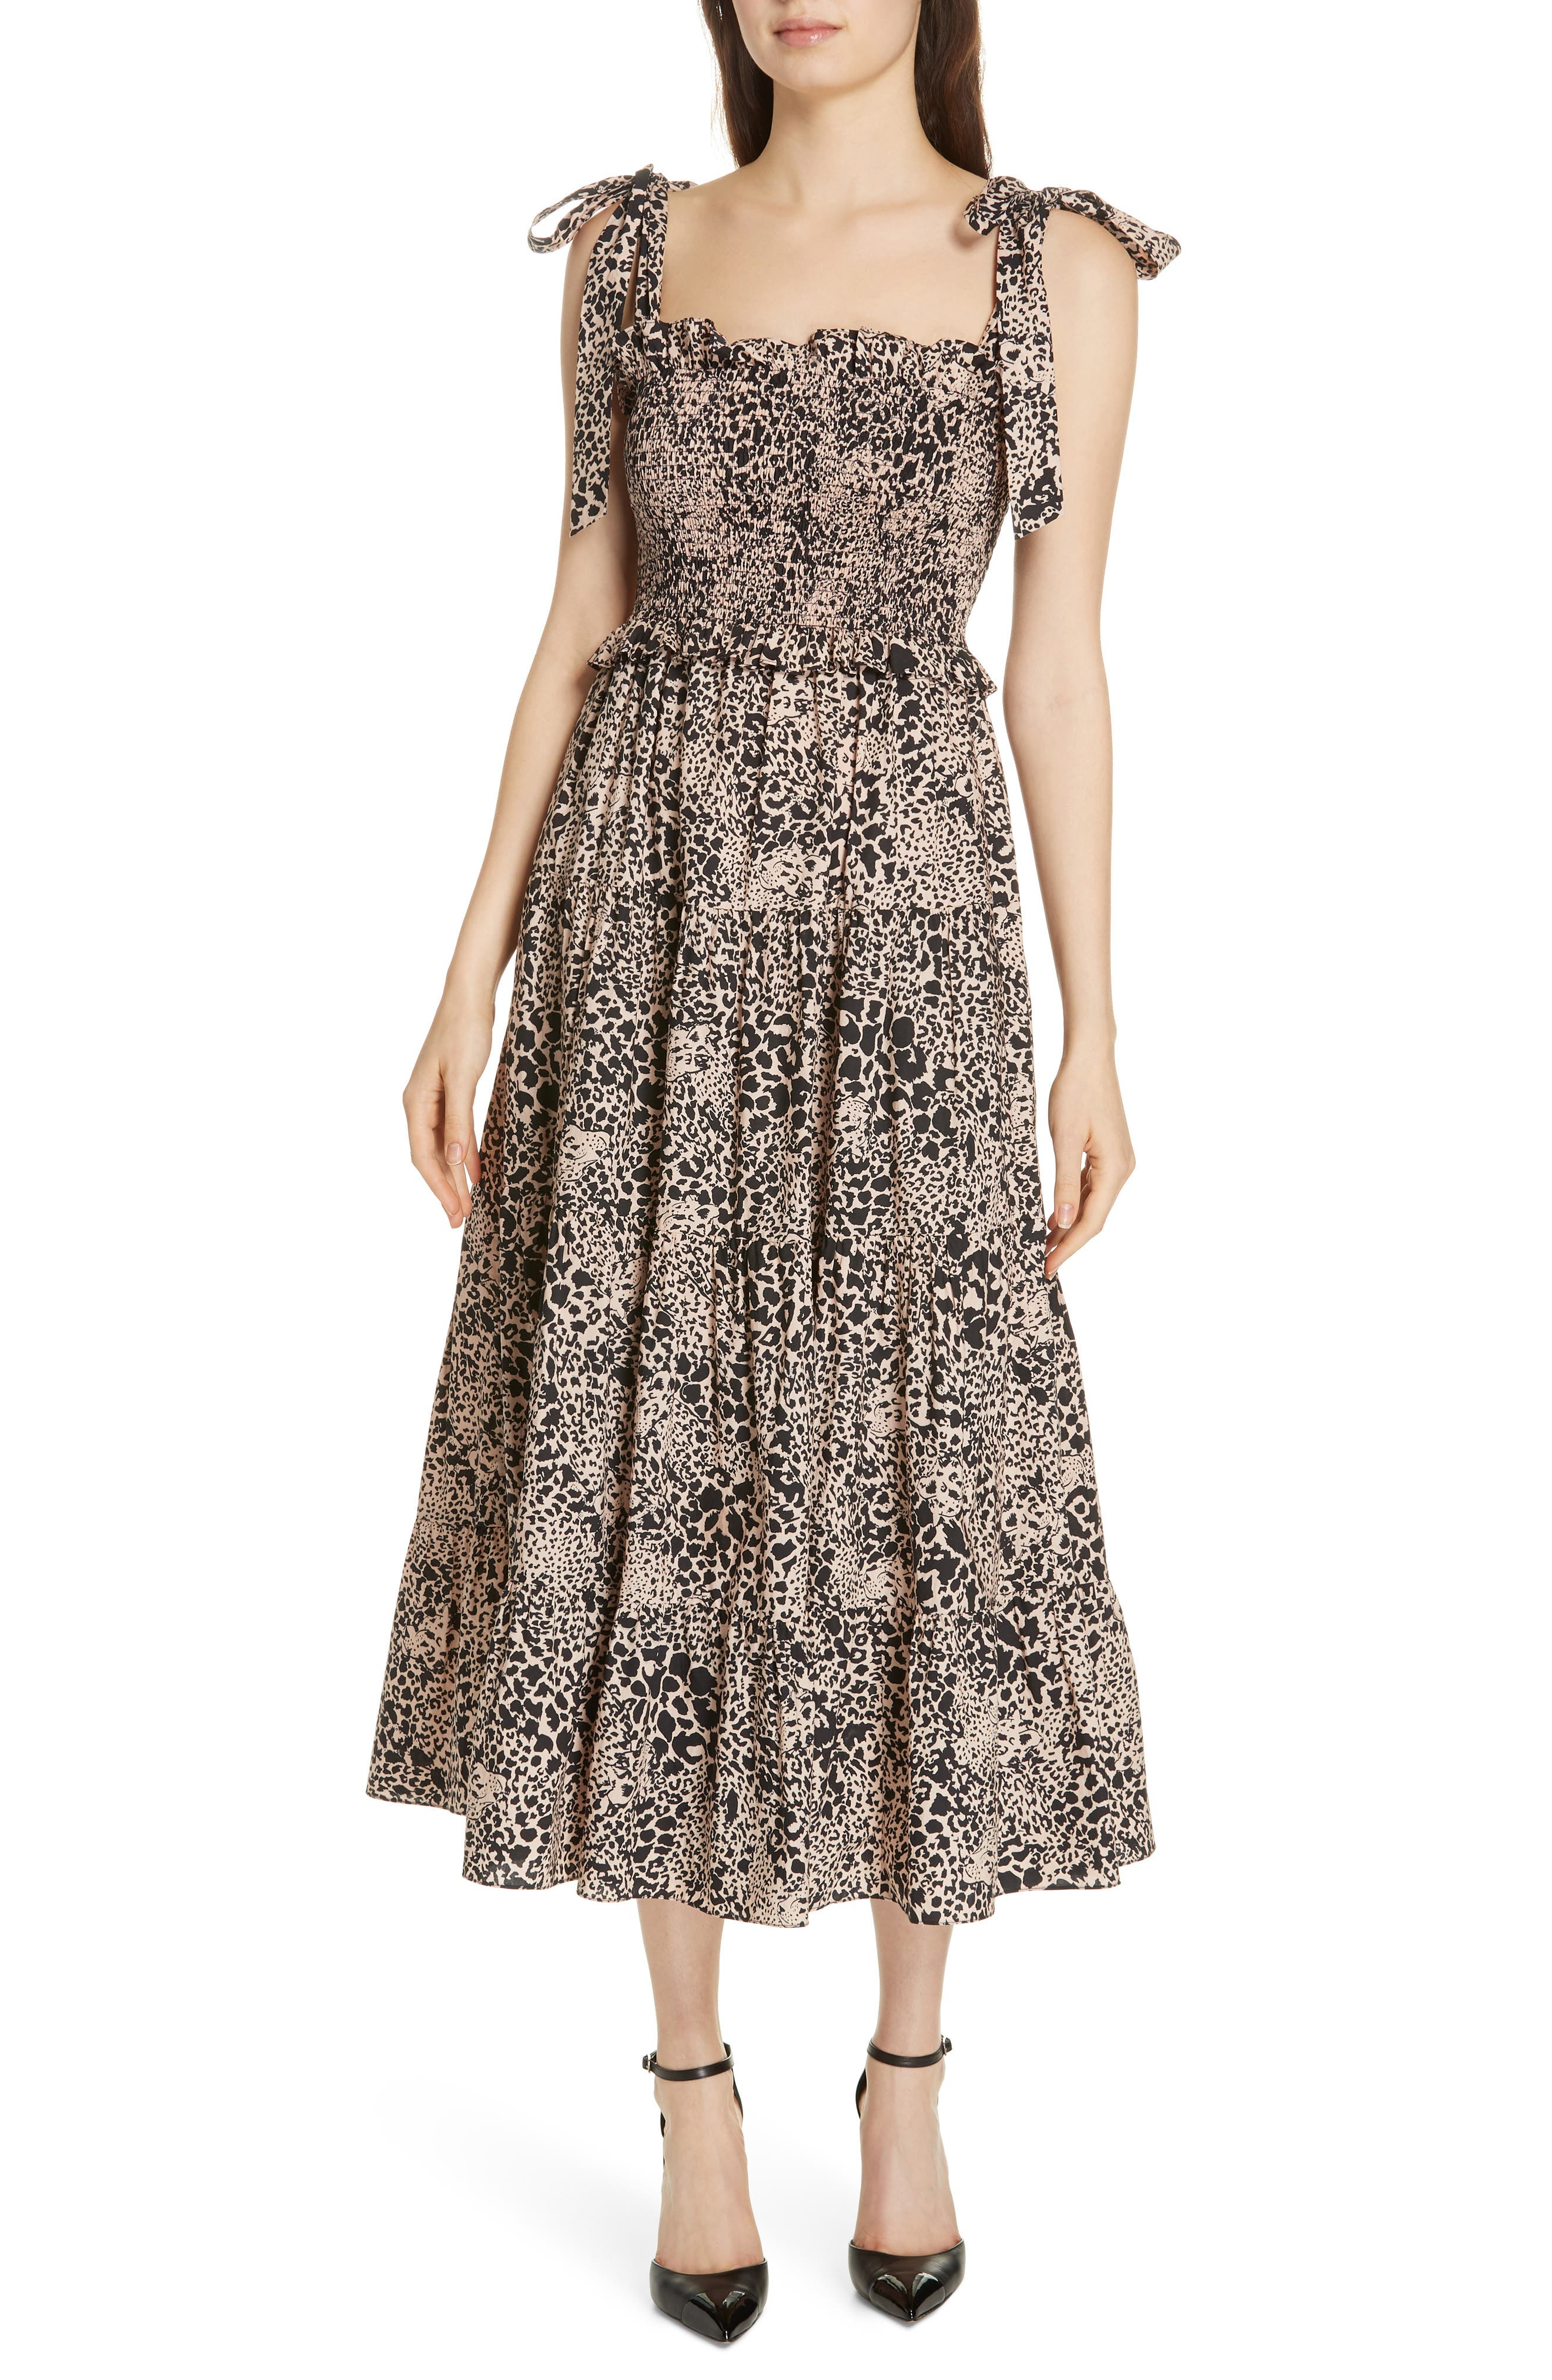 Leopard Print Smocked Dress,                             Main thumbnail 1, color,                             CHAMPAGNE COMBO